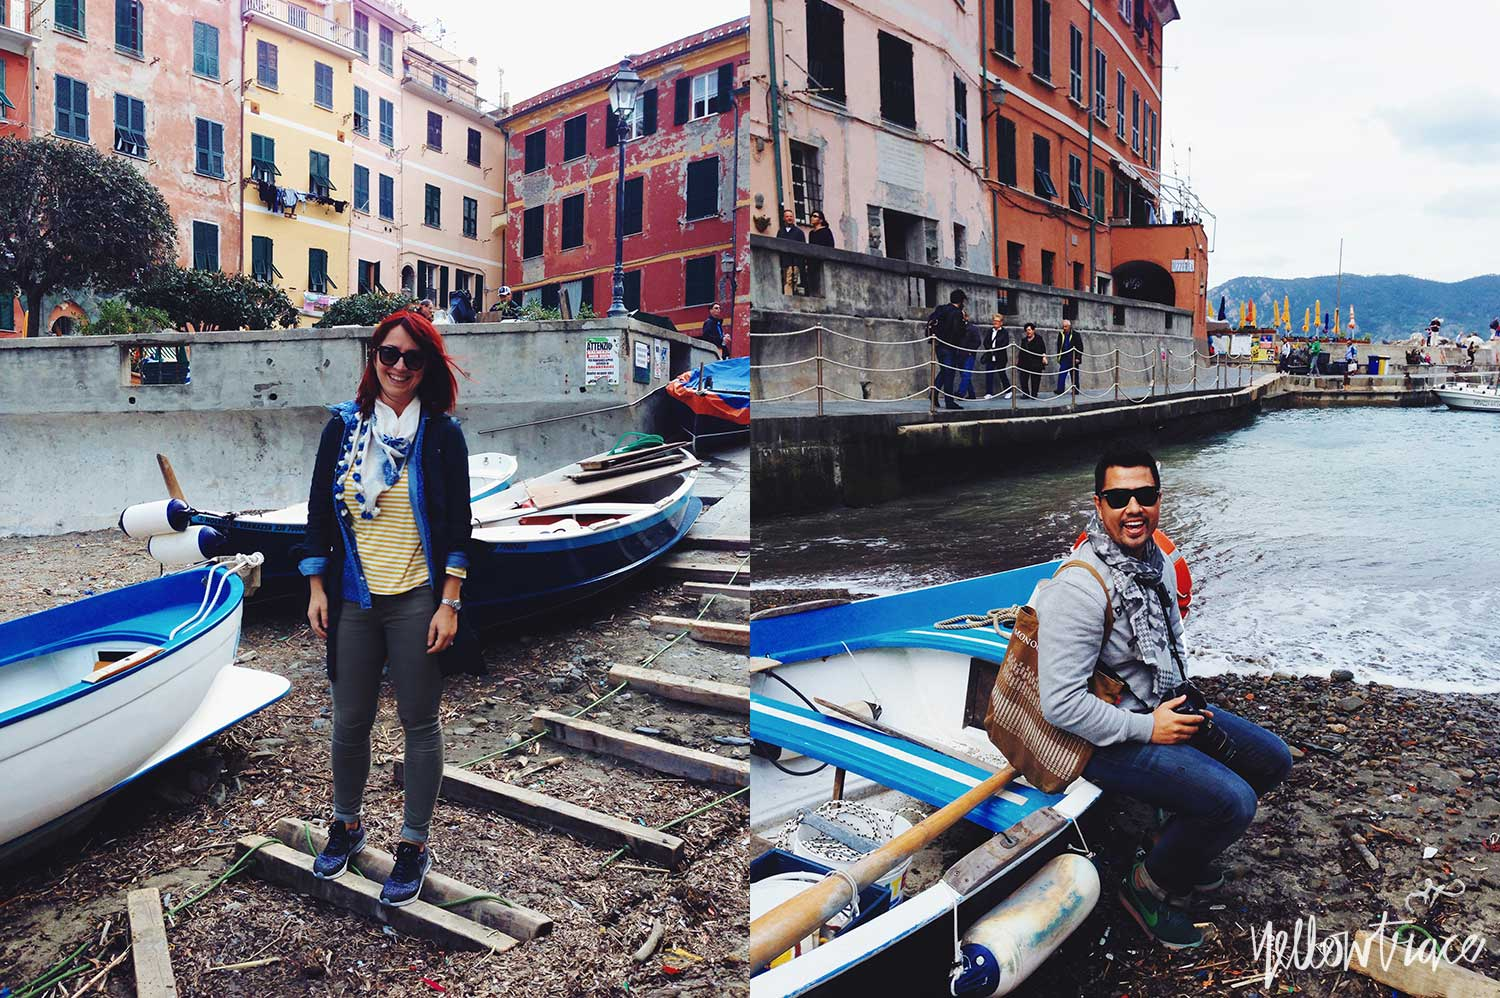 #YellowtraceTravels to Cinque Terre, Vernazza. Nick Hughes & Dana Tomic Hughes / Photo © Nick Hughes